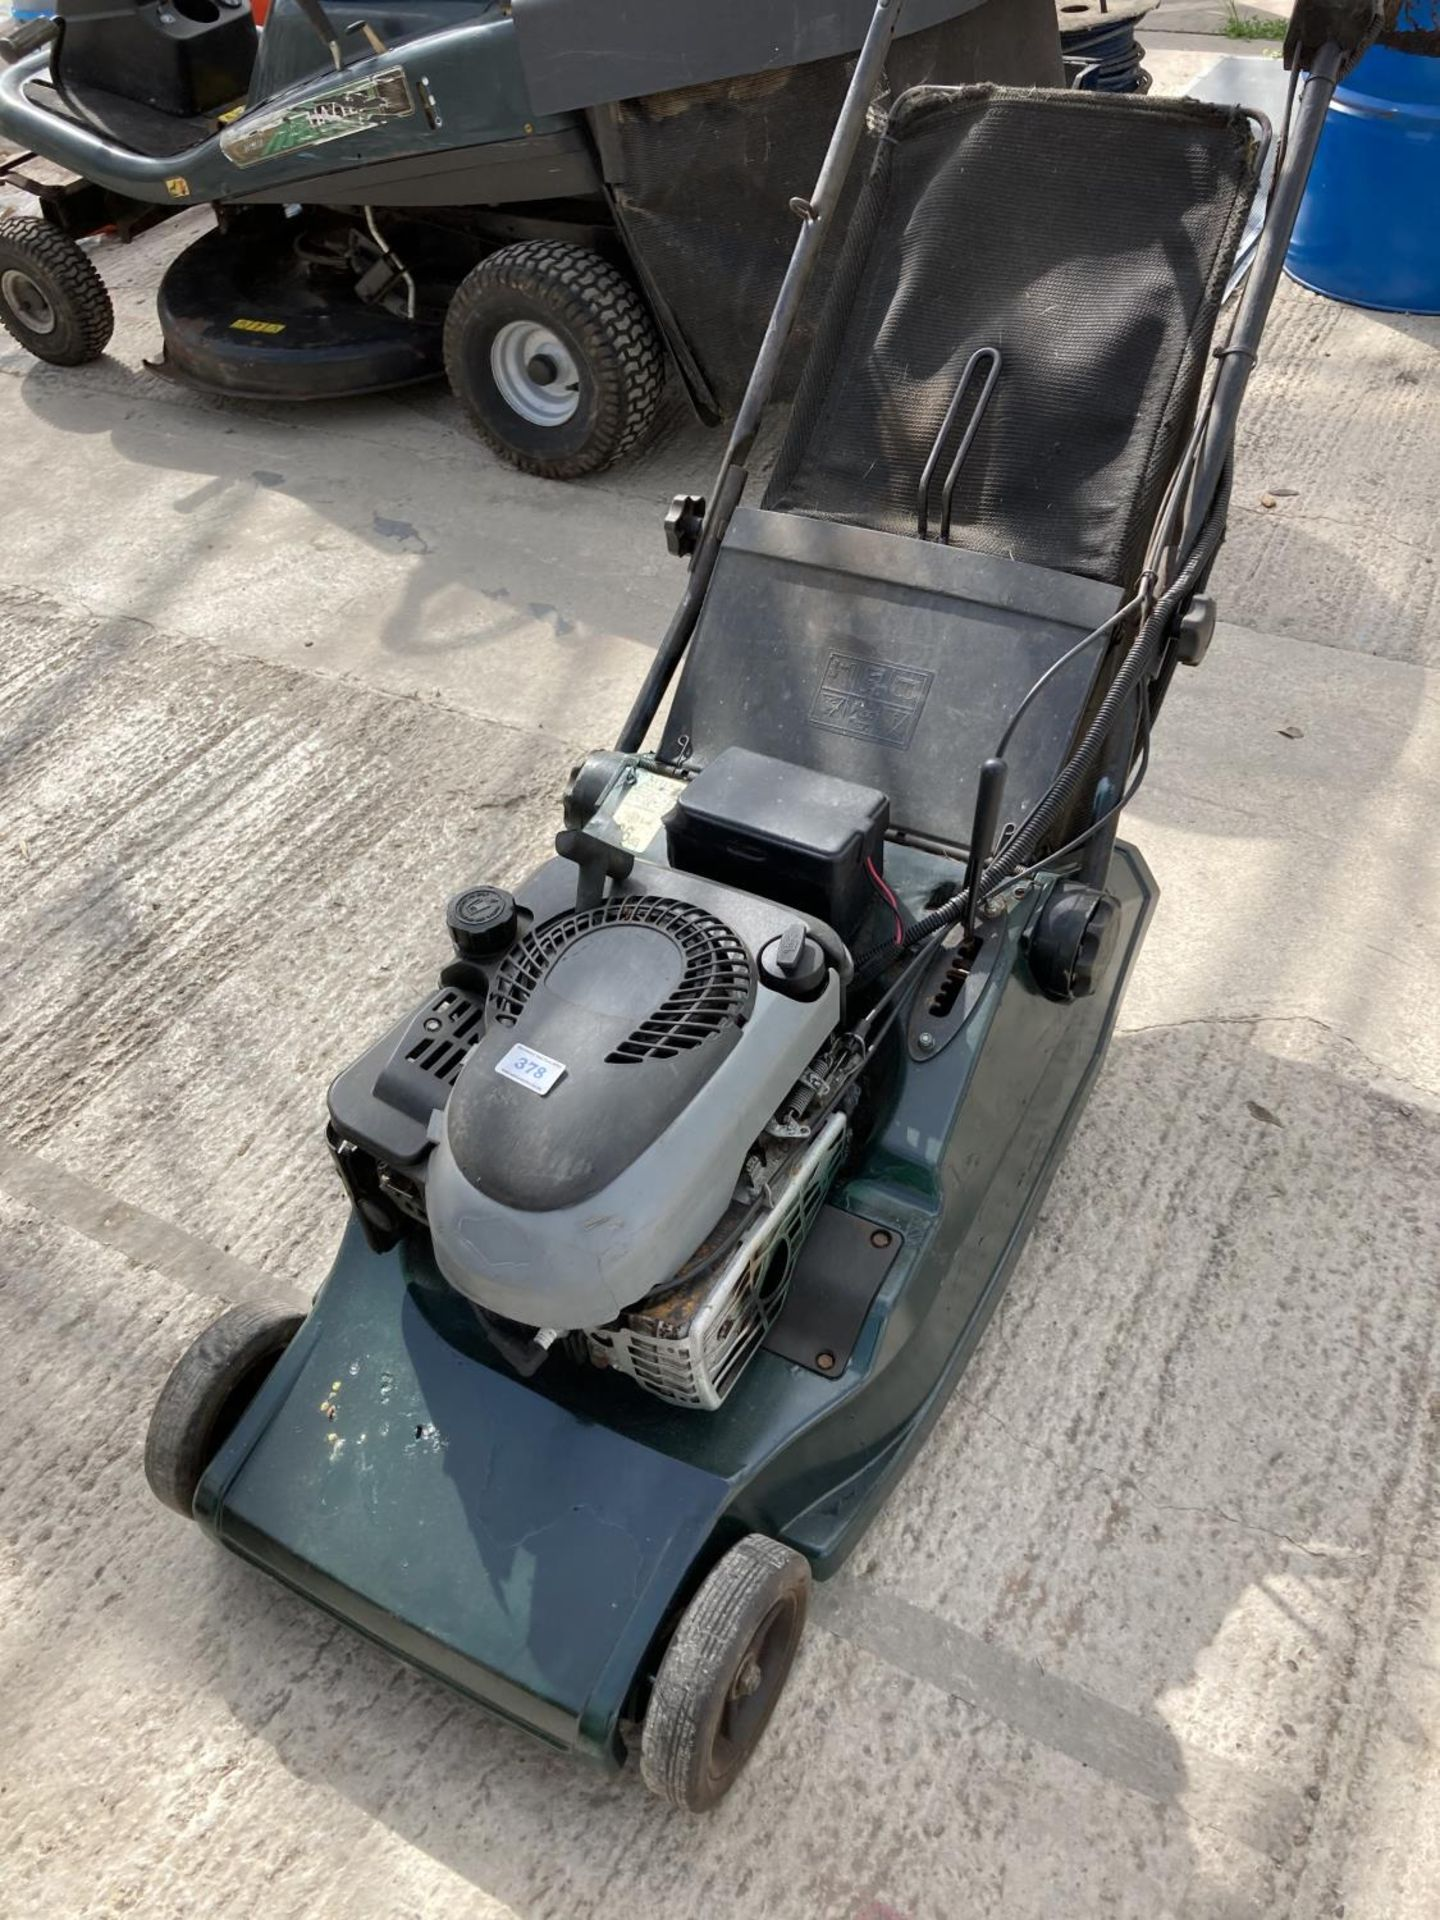 A HAYTER 19 INCH HARRIER ROLLER DRIVE LAWN MOWER BELIEVED WORKING BUT NO WARRANTY NO VAT